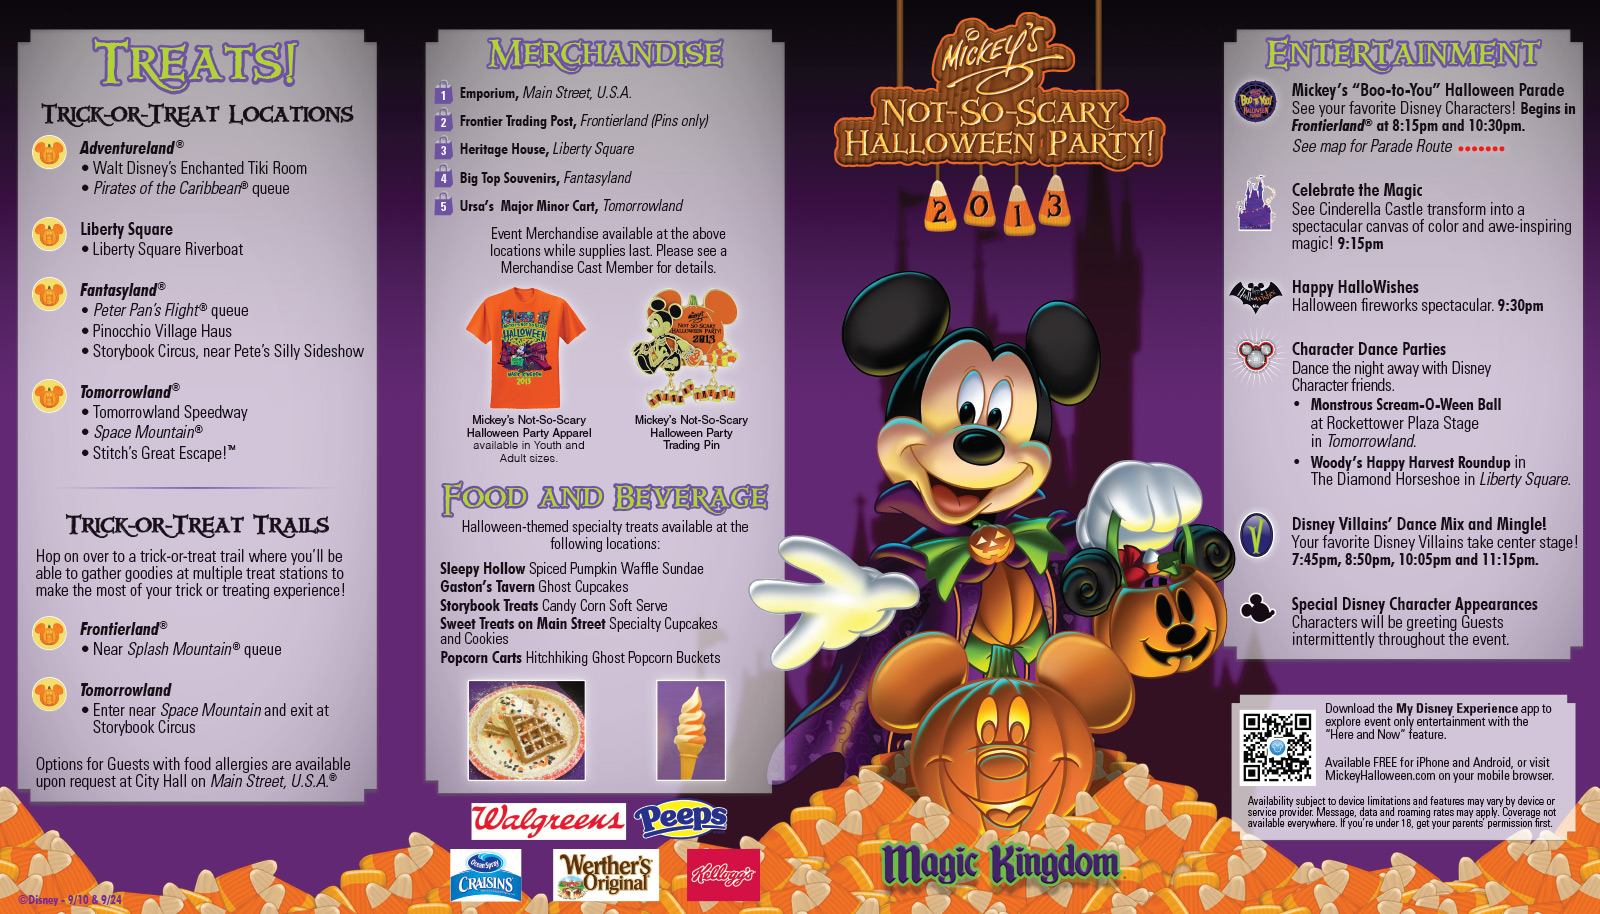 Mickey's Not-So-Scary Halloween Party guide map 2013 - Photo 1 of 2